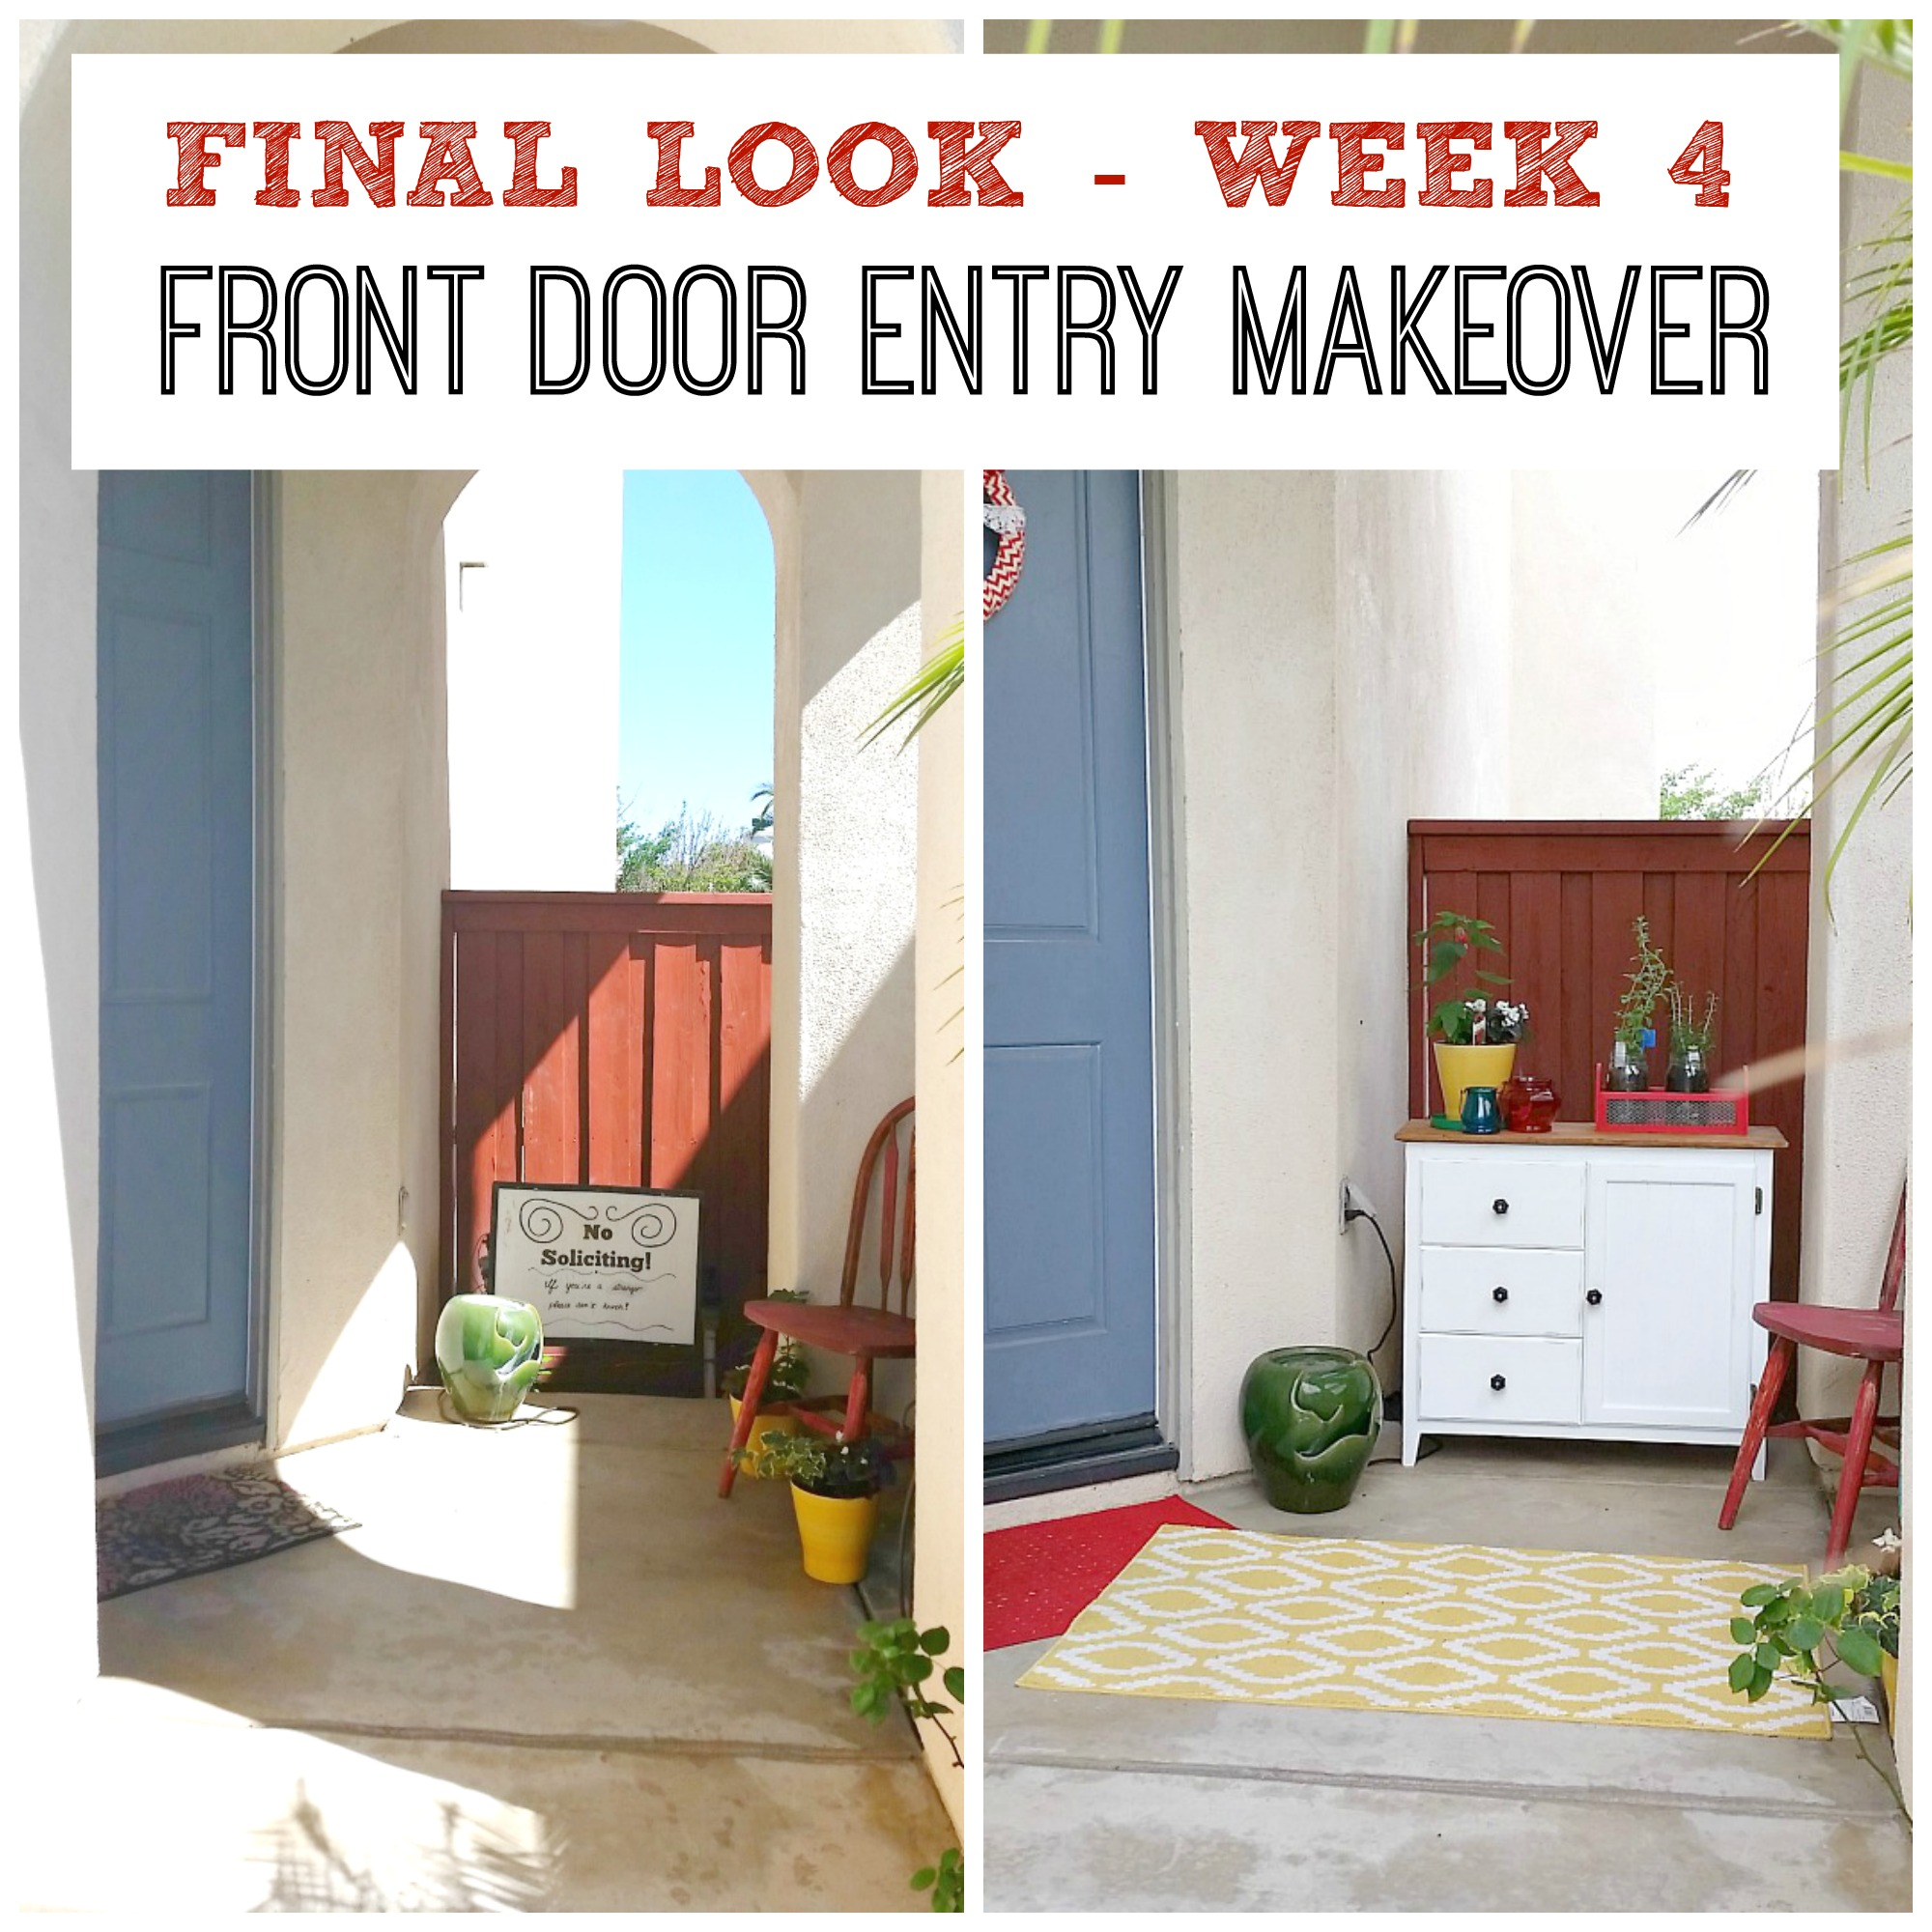 Final look -front door entry makeover